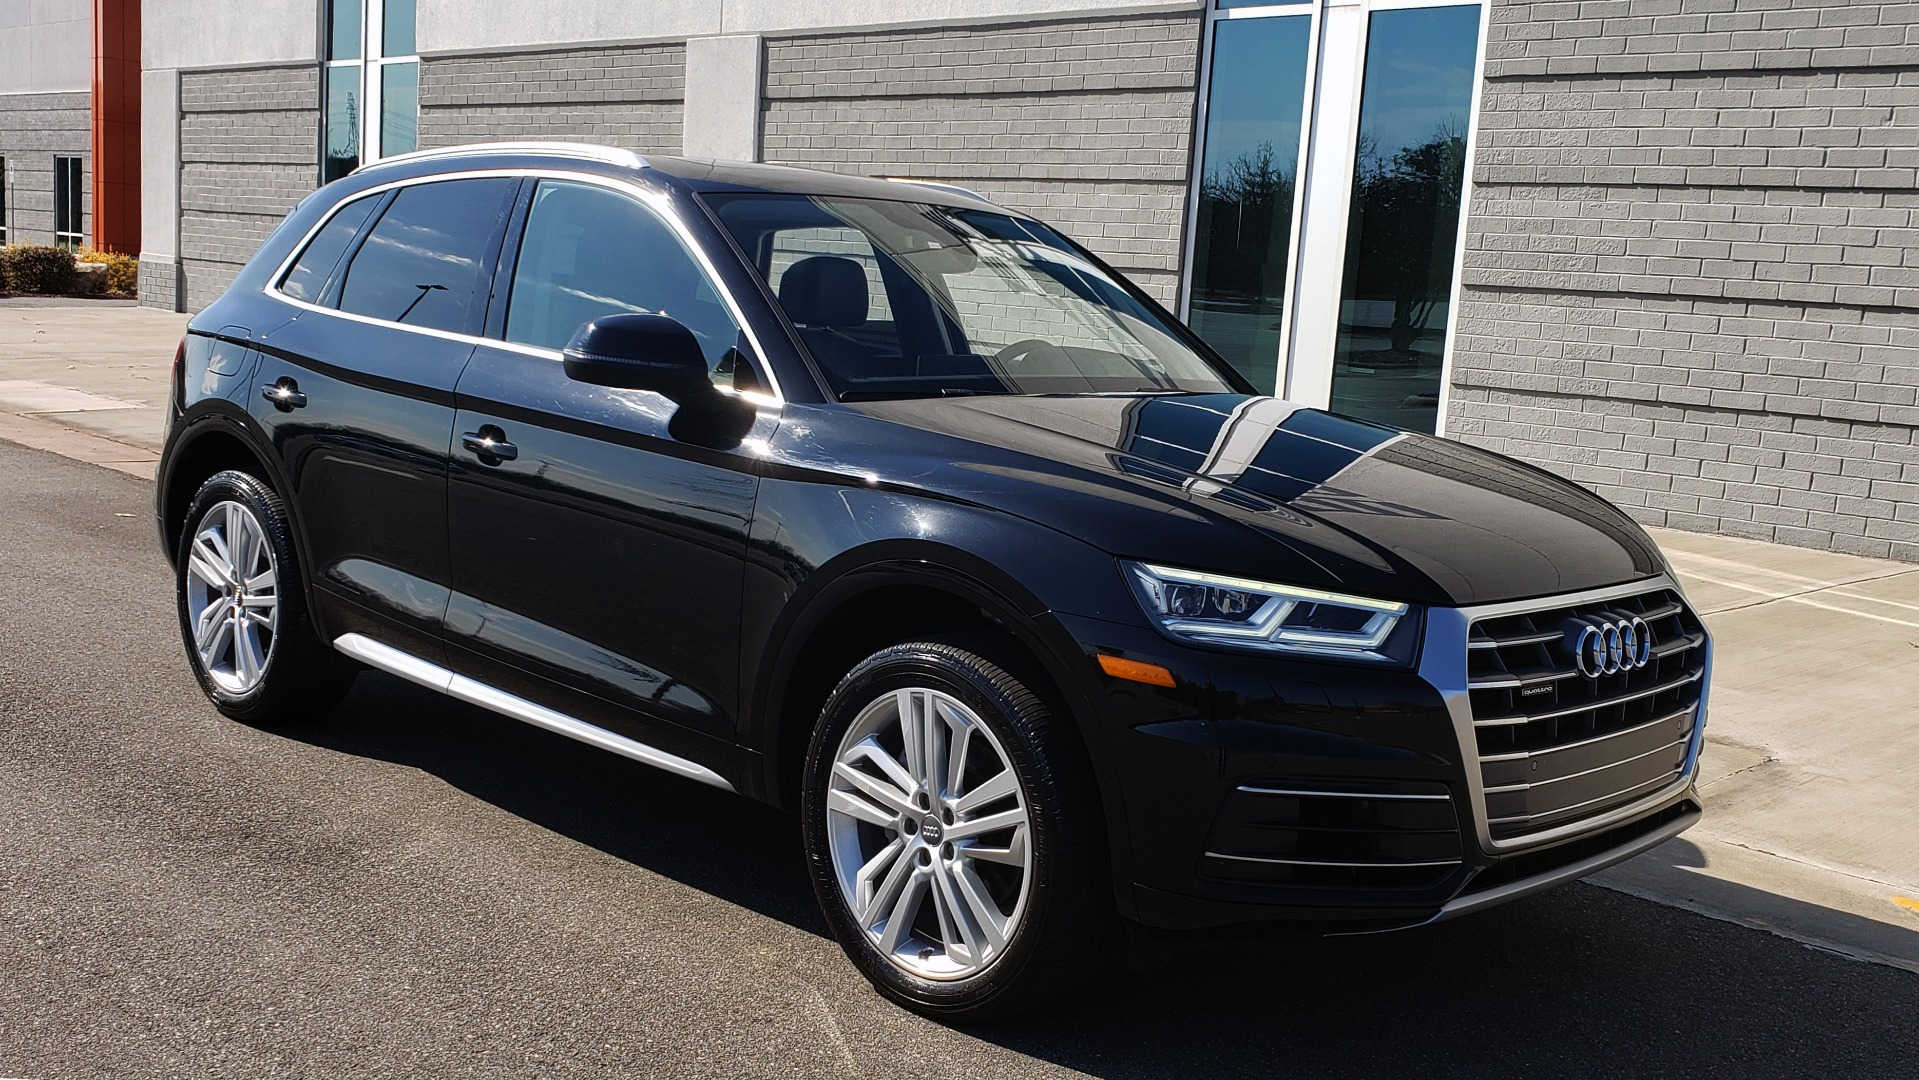 Used 2018 Audi Q5 PREMIUM PLUS / NAV / PANO-ROOF / CLD WTHR / REARVIEW for sale $30,435 at Formula Imports in Charlotte NC 28227 6